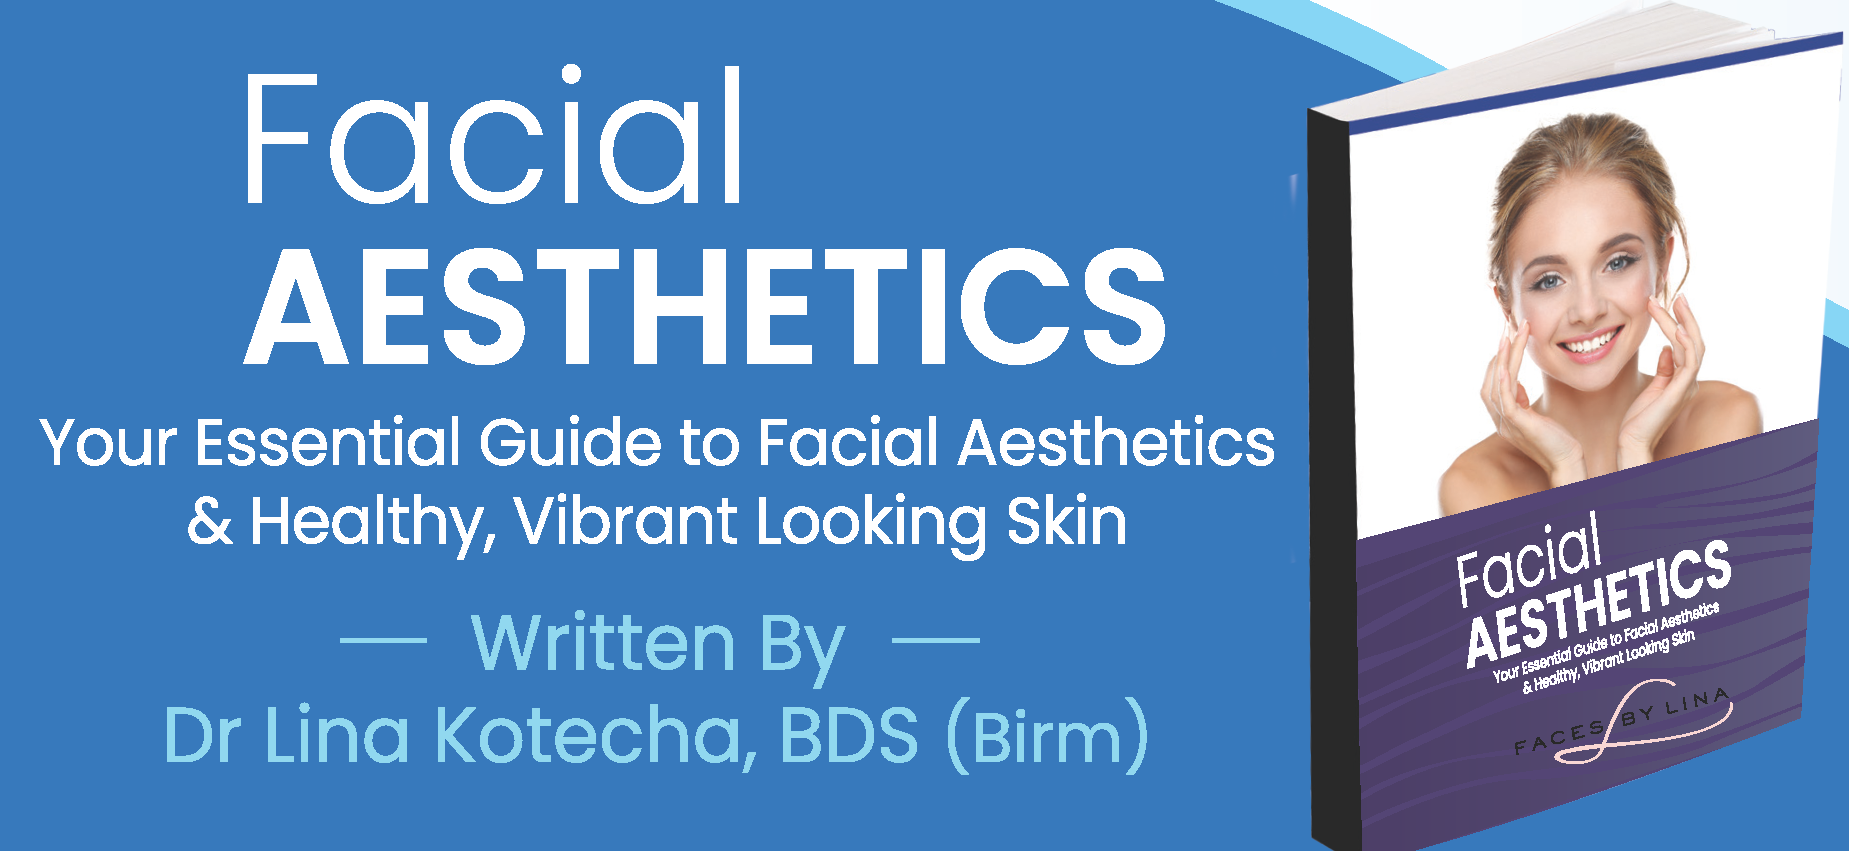 Dermal filler information pack